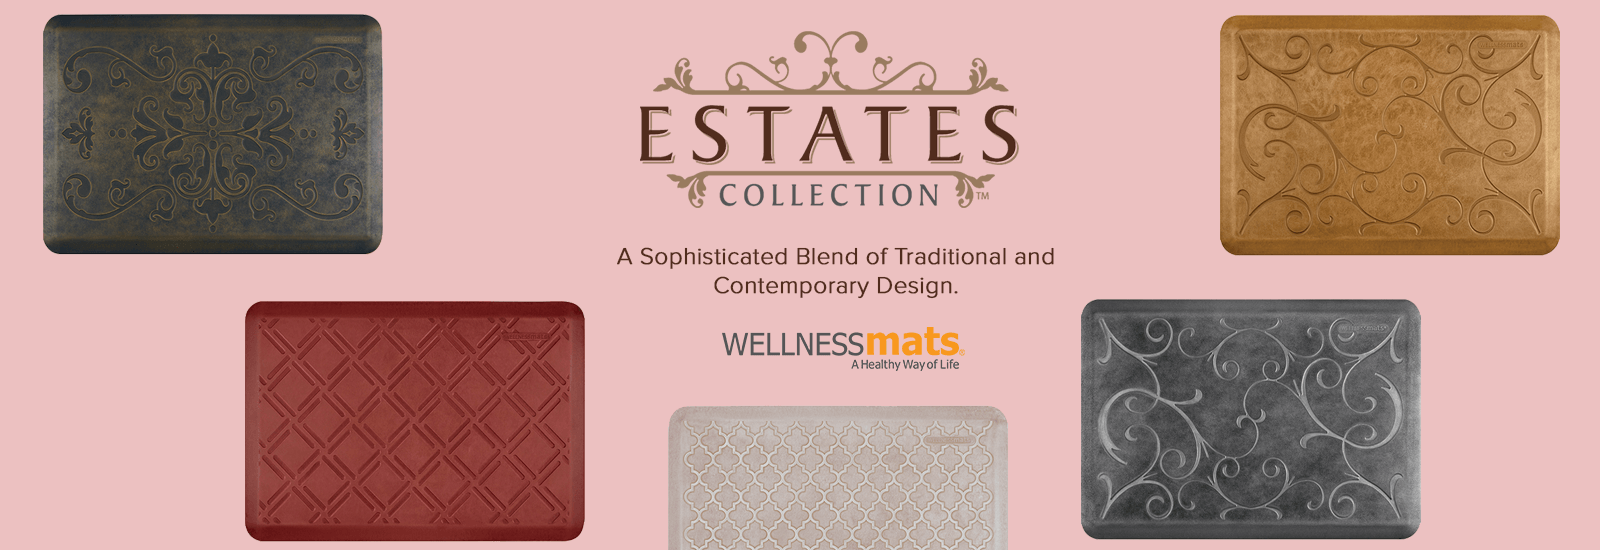 Wellness mats Estates banner